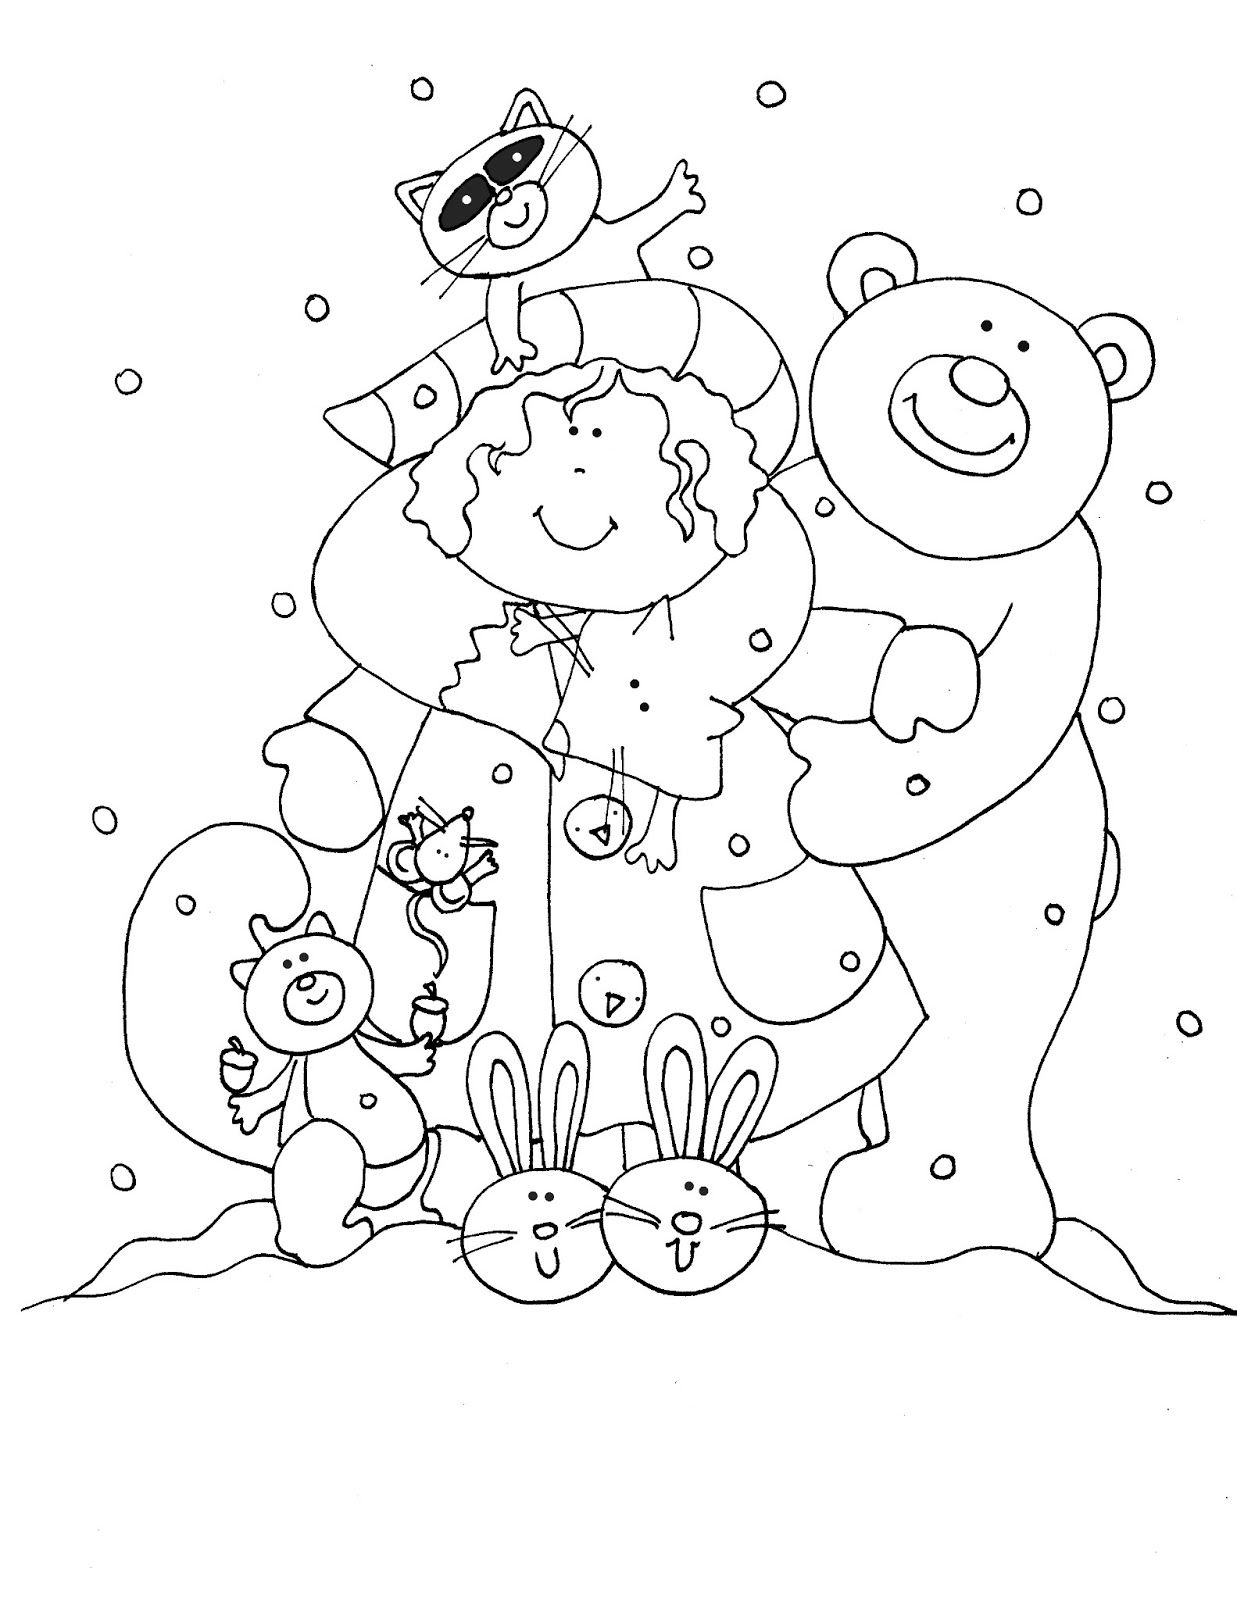 Christmas In July Coloring Sheets With Free Dearie Dolls Digi Stamps Woodland Forever